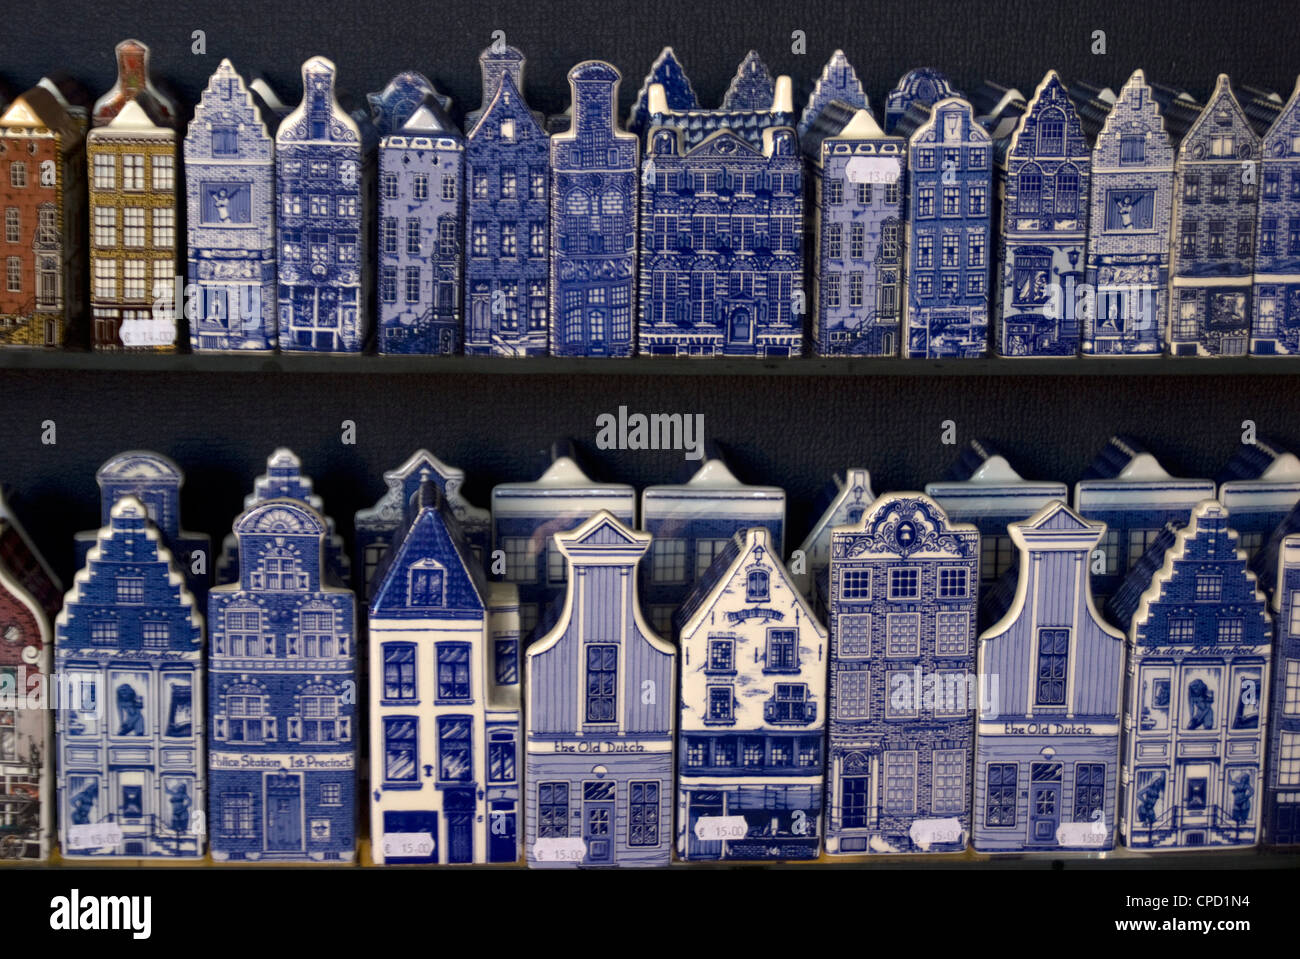 Delft pottery figures of traditional houses, Delft, Netherlands, Europe - Stock Image